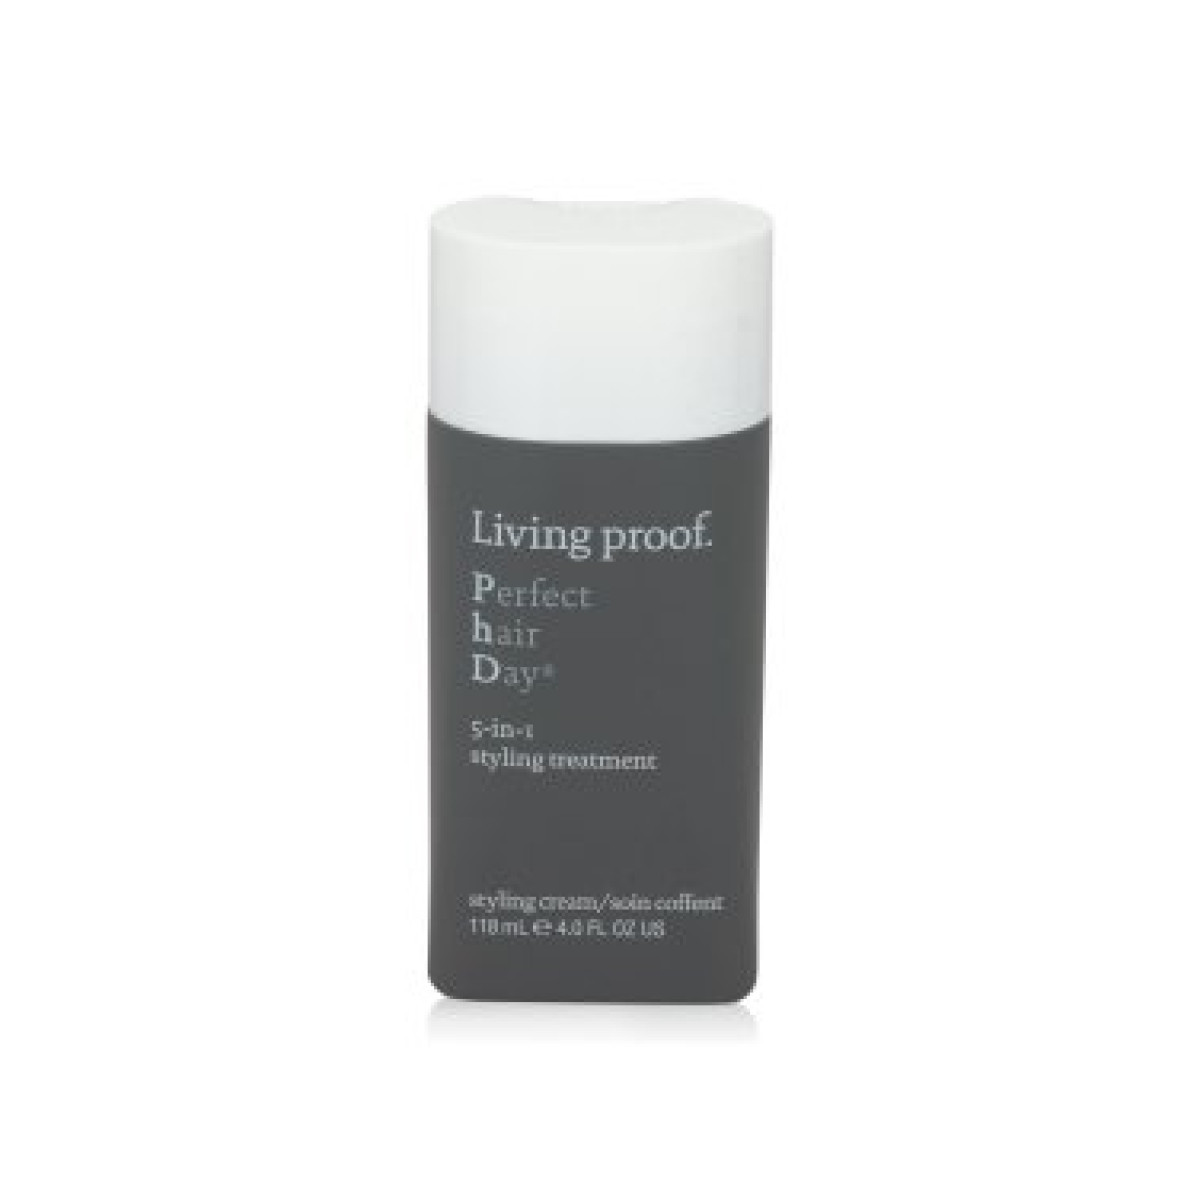 Living Proof Perfect Hair Day 5 In 1 Styling Treatment 2 Oz Travel